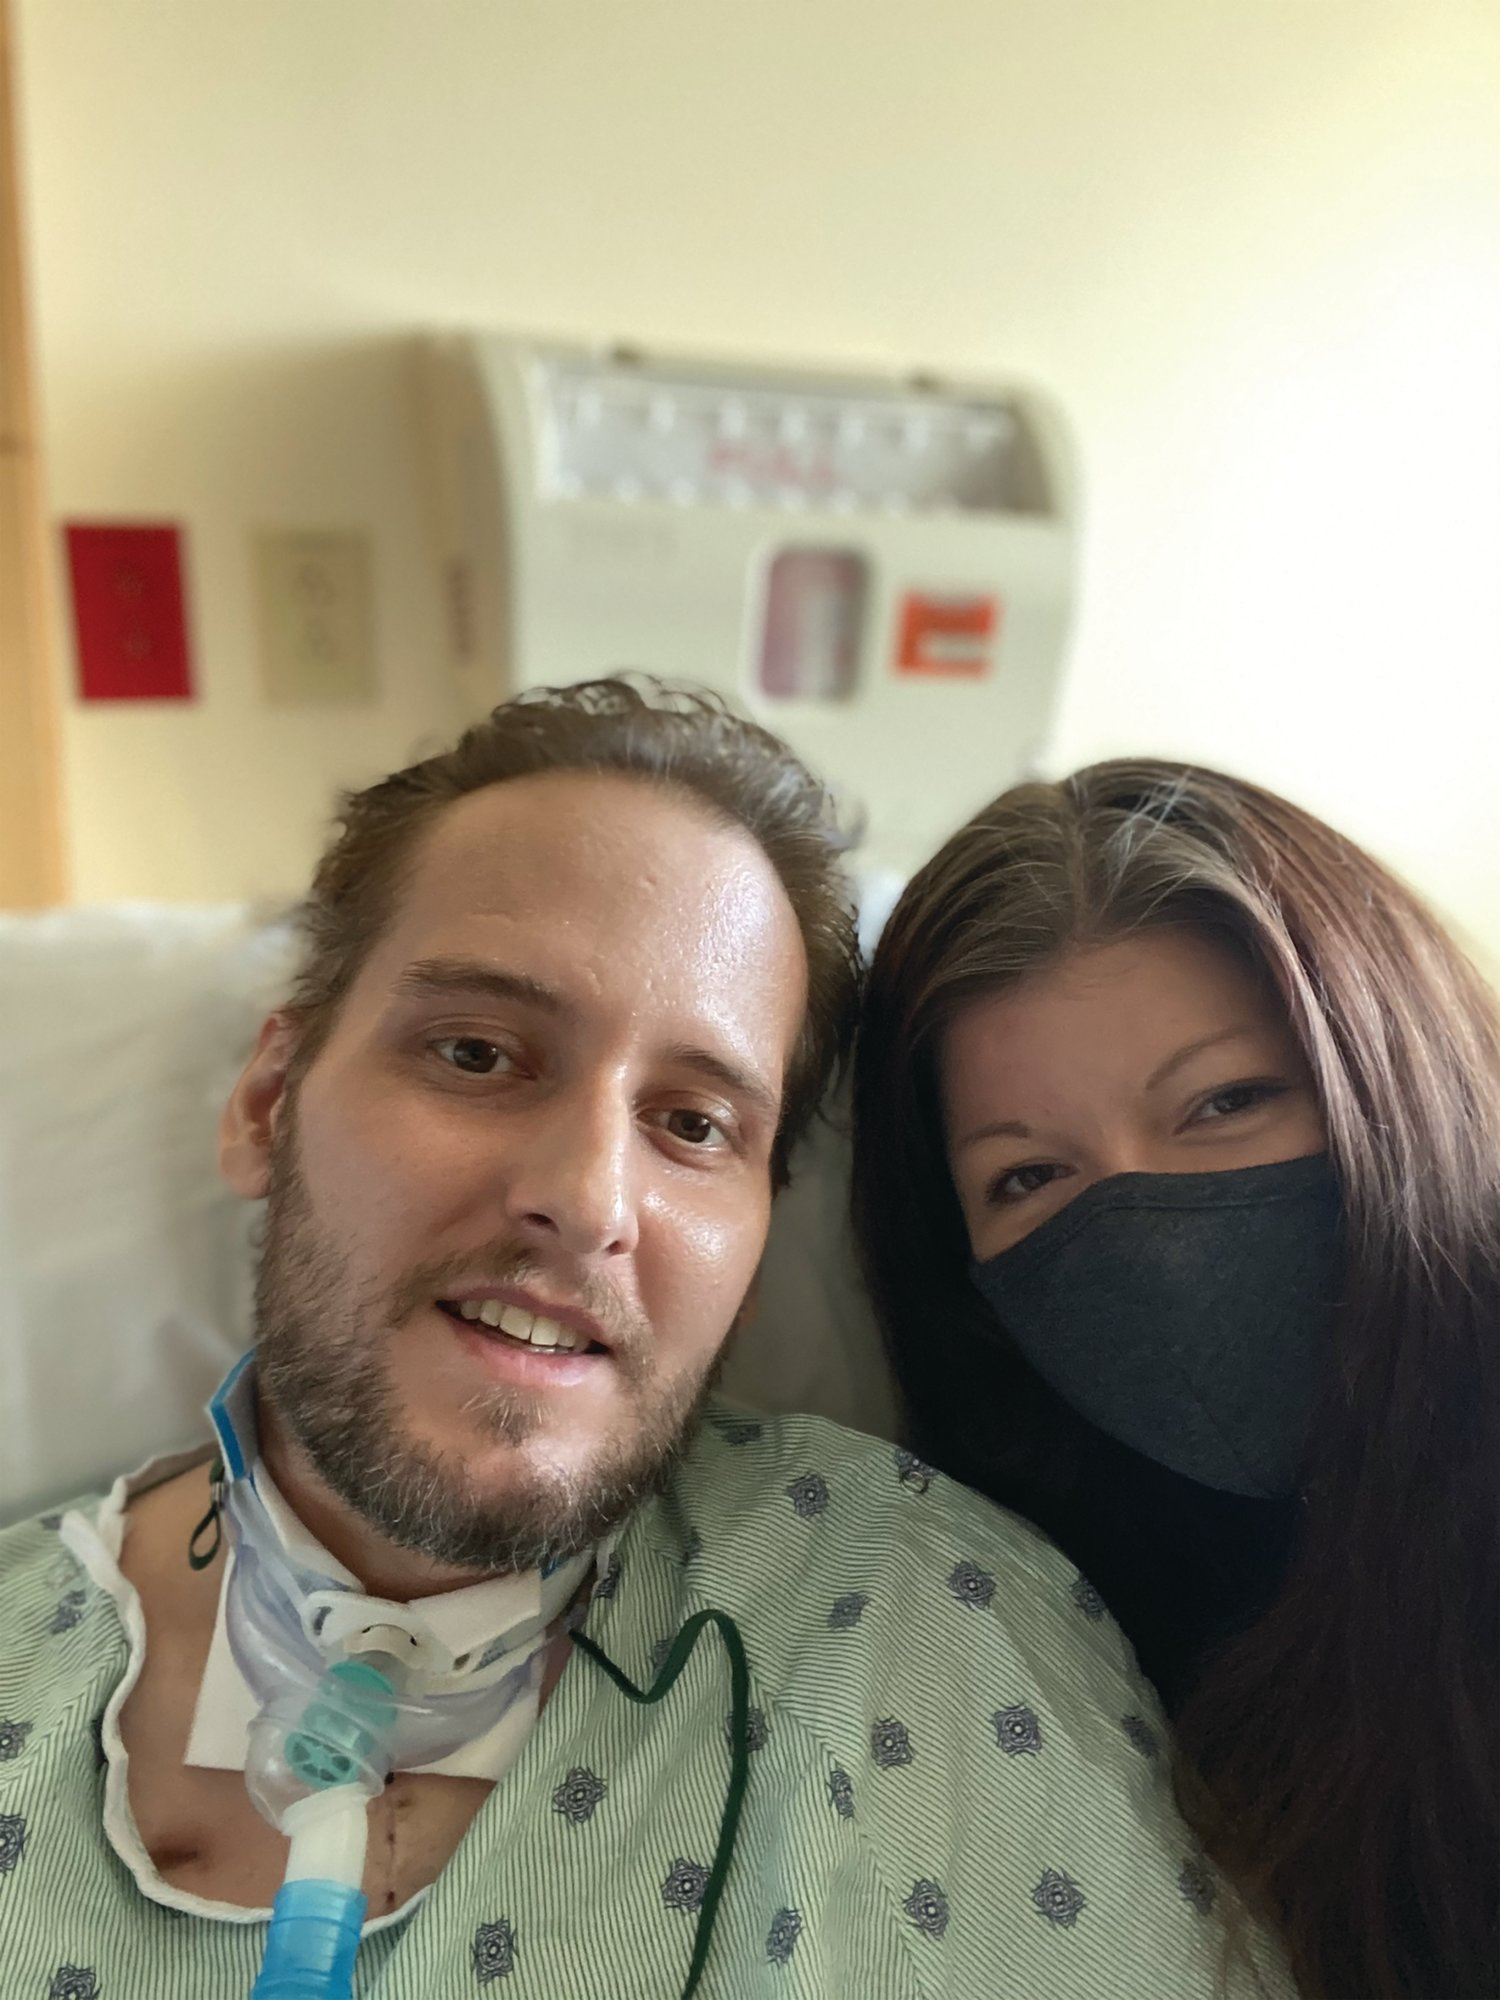 Ryan and Melissa Nacovitch both contracted COVID-19 in December, and Ryan is thought by his doctors to be the first patient in the Carolinas to receive a lung transplant because of the damage to his lungs from the virus.